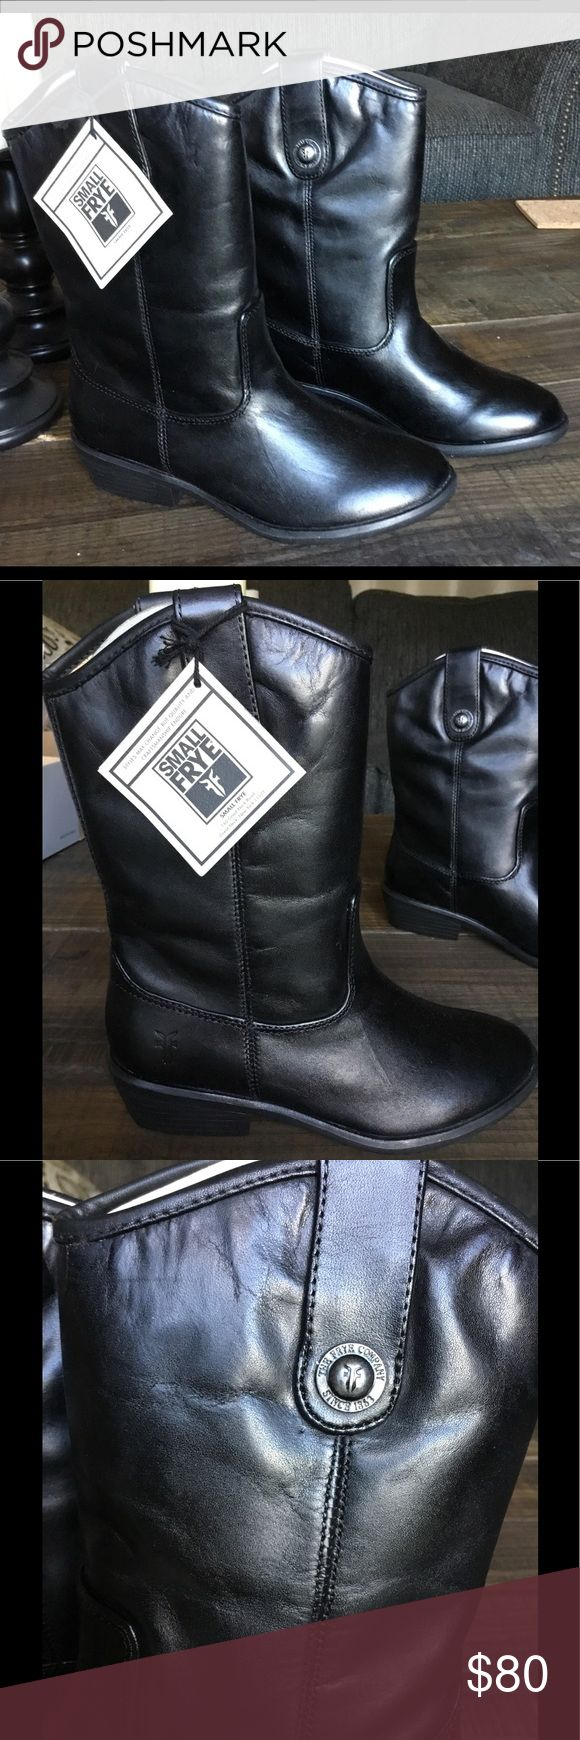 Little frye leather boots Melissa button black leather little frye boots. Size 1 m . Frye Shoes Boots